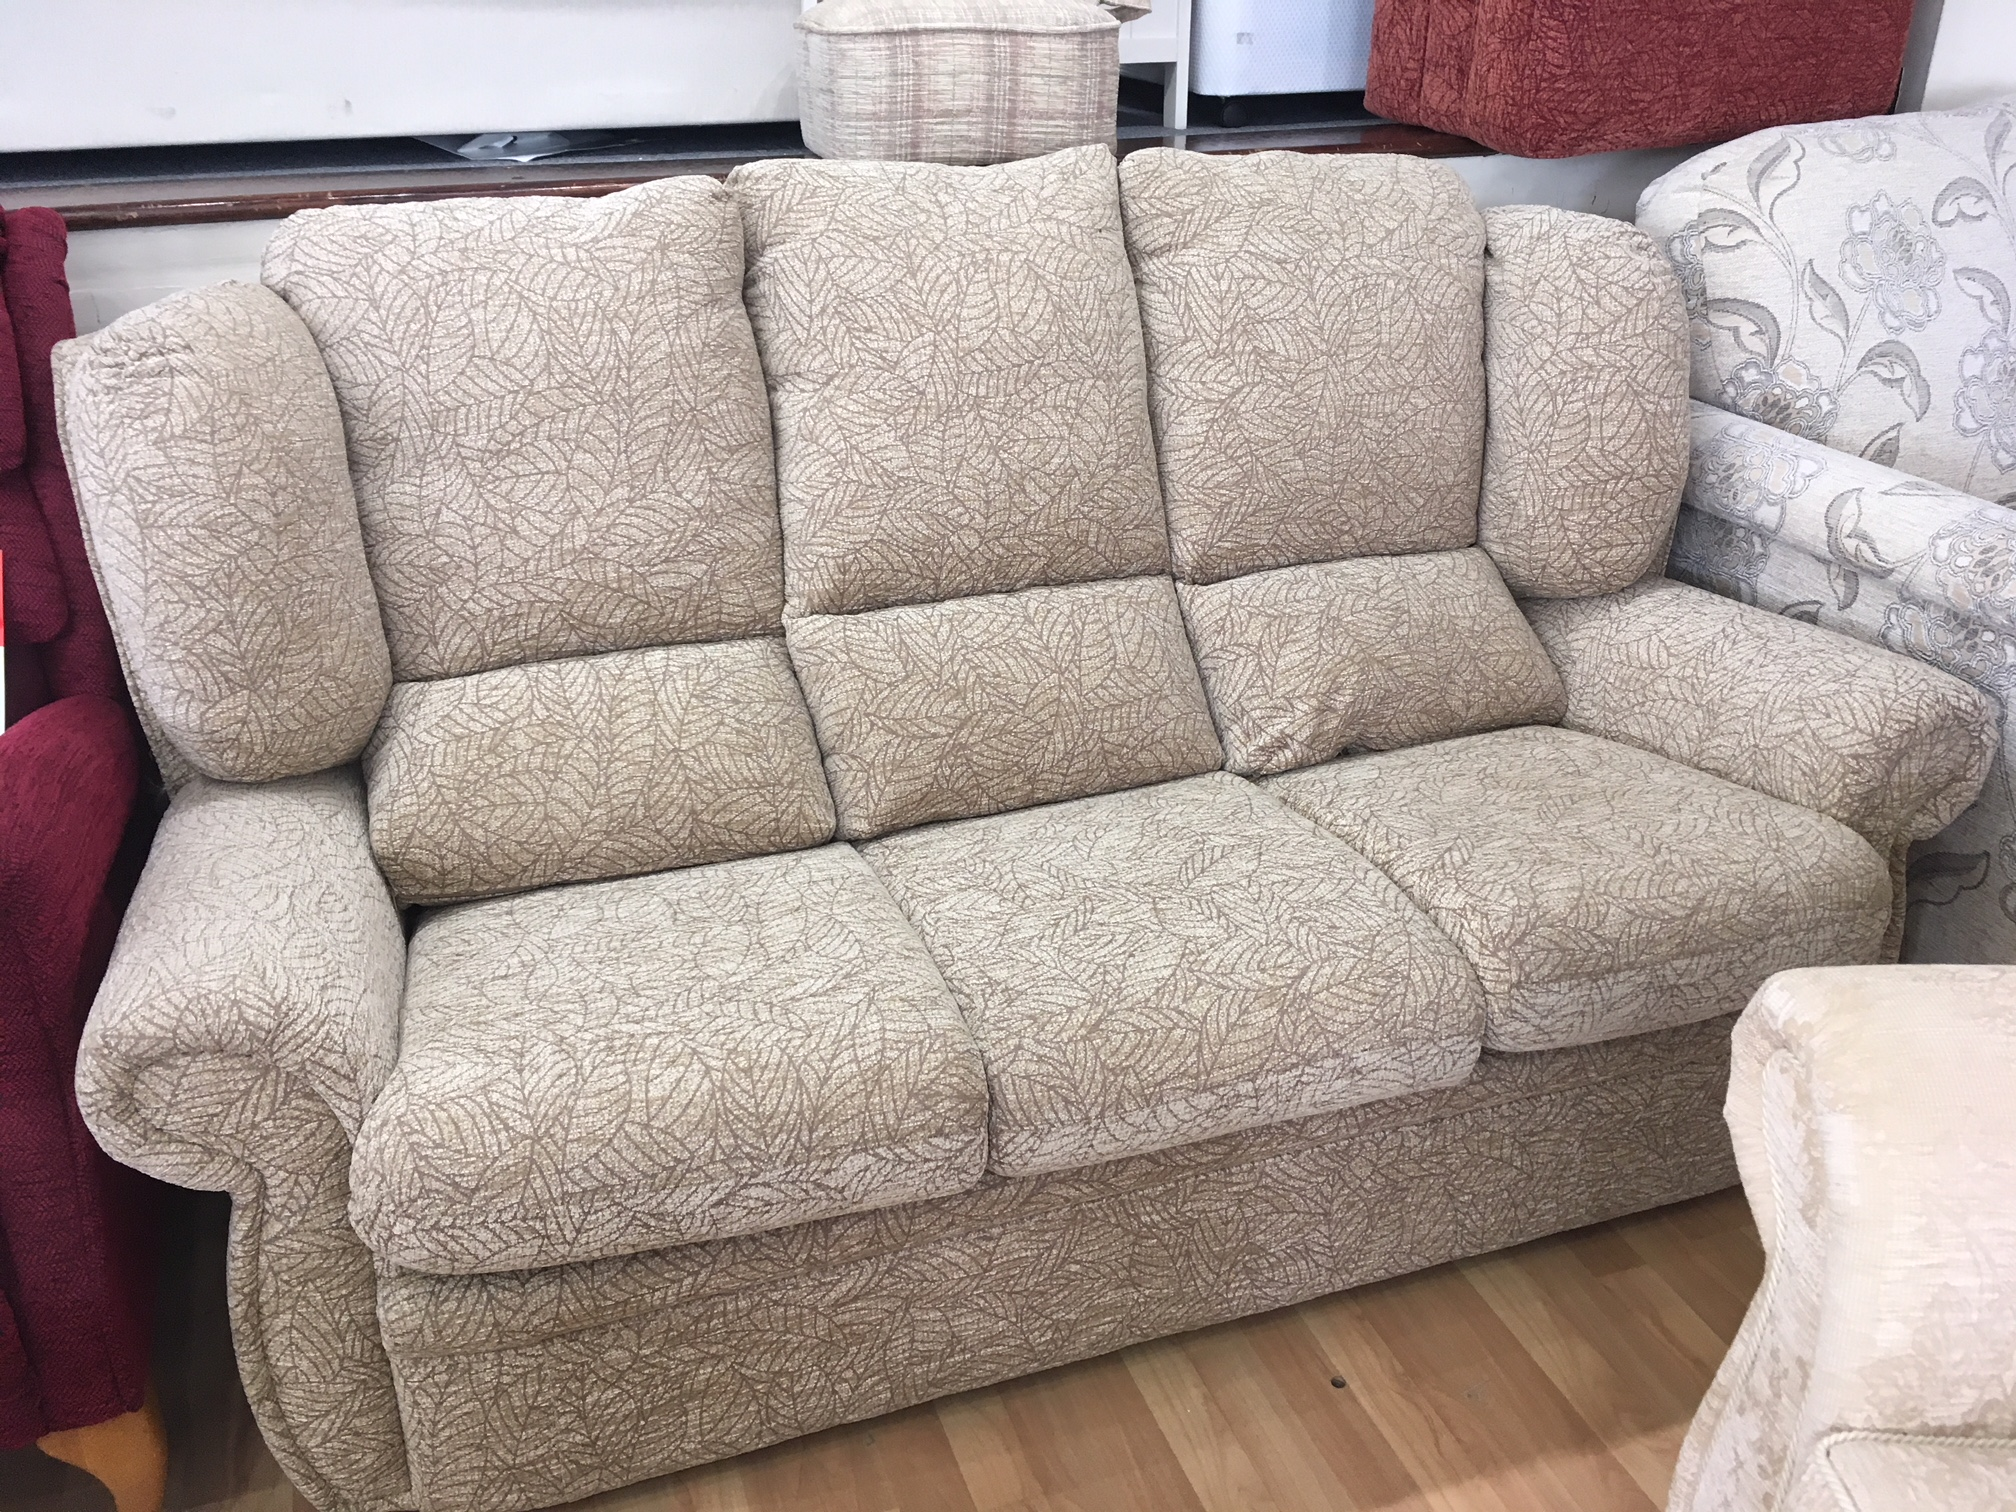 Victoria   Three Seater Fabric Sofa   Was: £899.00  Sale 1/2 Price Offer : £445.00